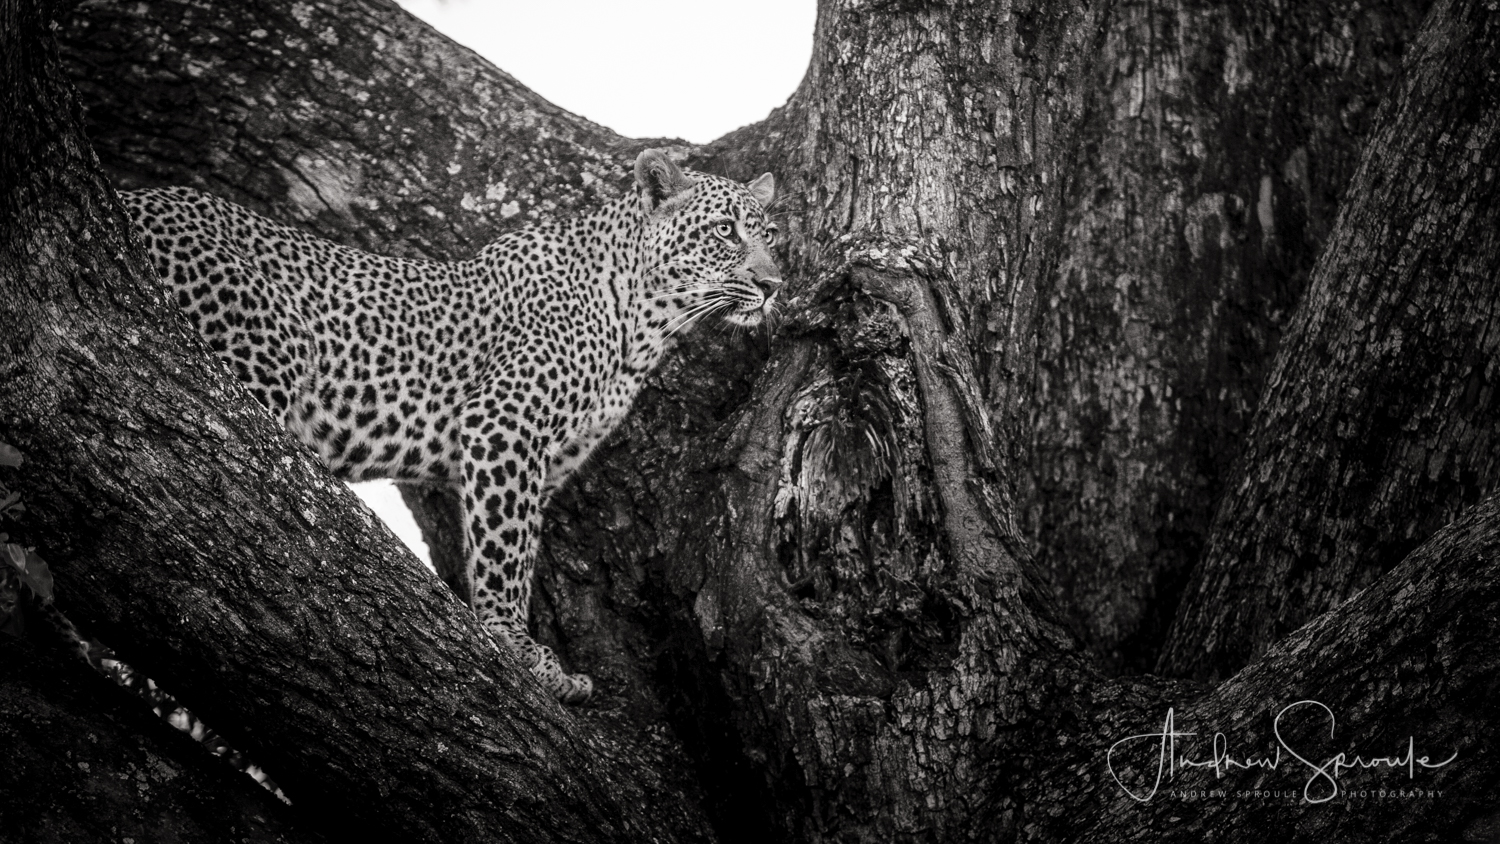 Andrew Sproule | Adventure and Wildlife Photographer | African Leopard, Kruger National Park, South Africa | Eternal Collection | Photo © Andrew Sproule